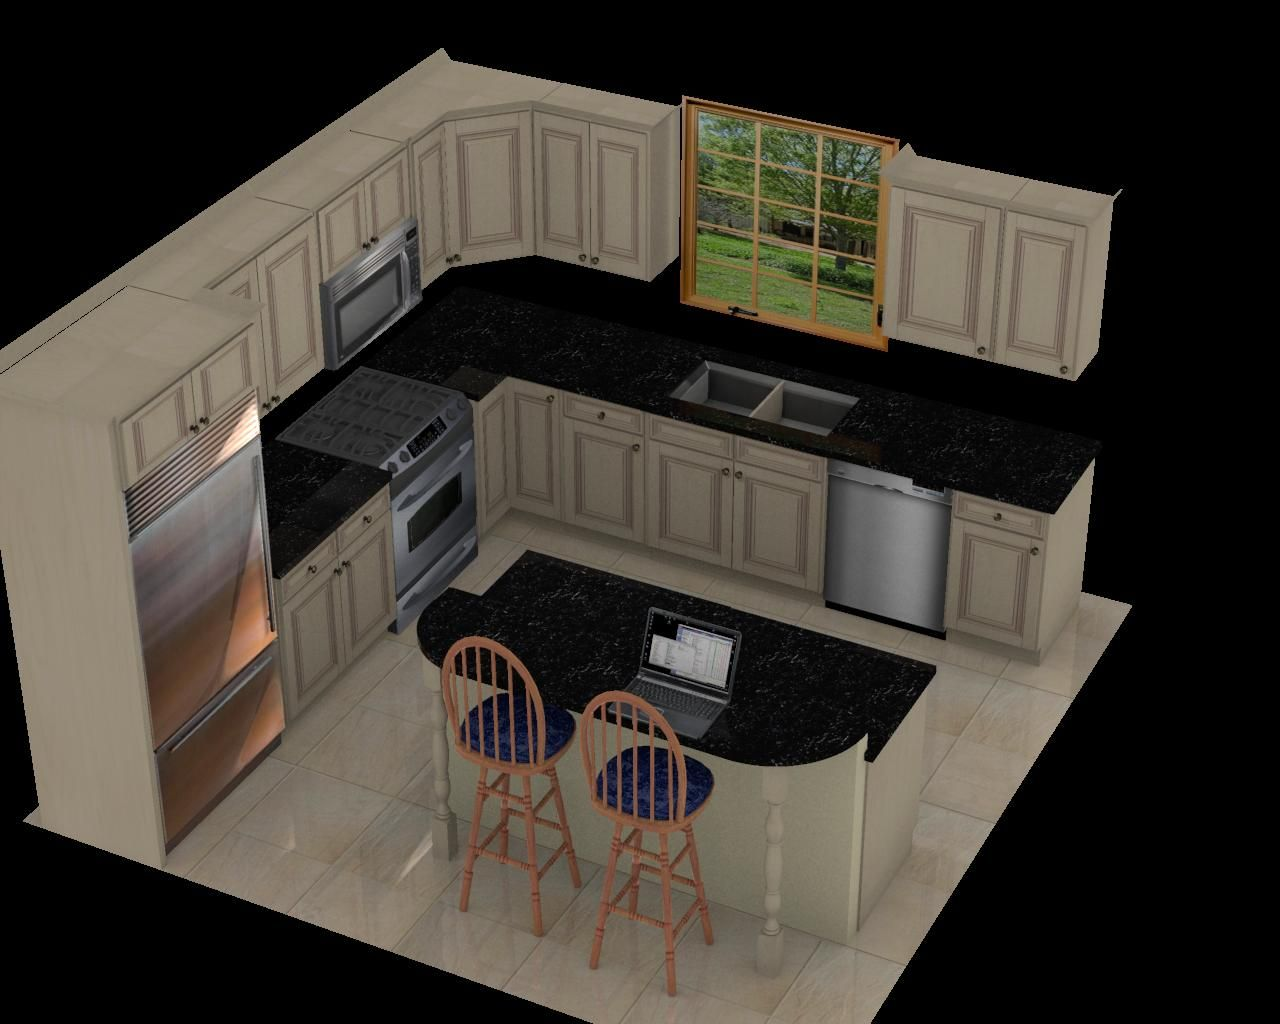 Luxury 12x12 kitchen layout with island 51 for with 12x12 for 10x10 kitchen ideas